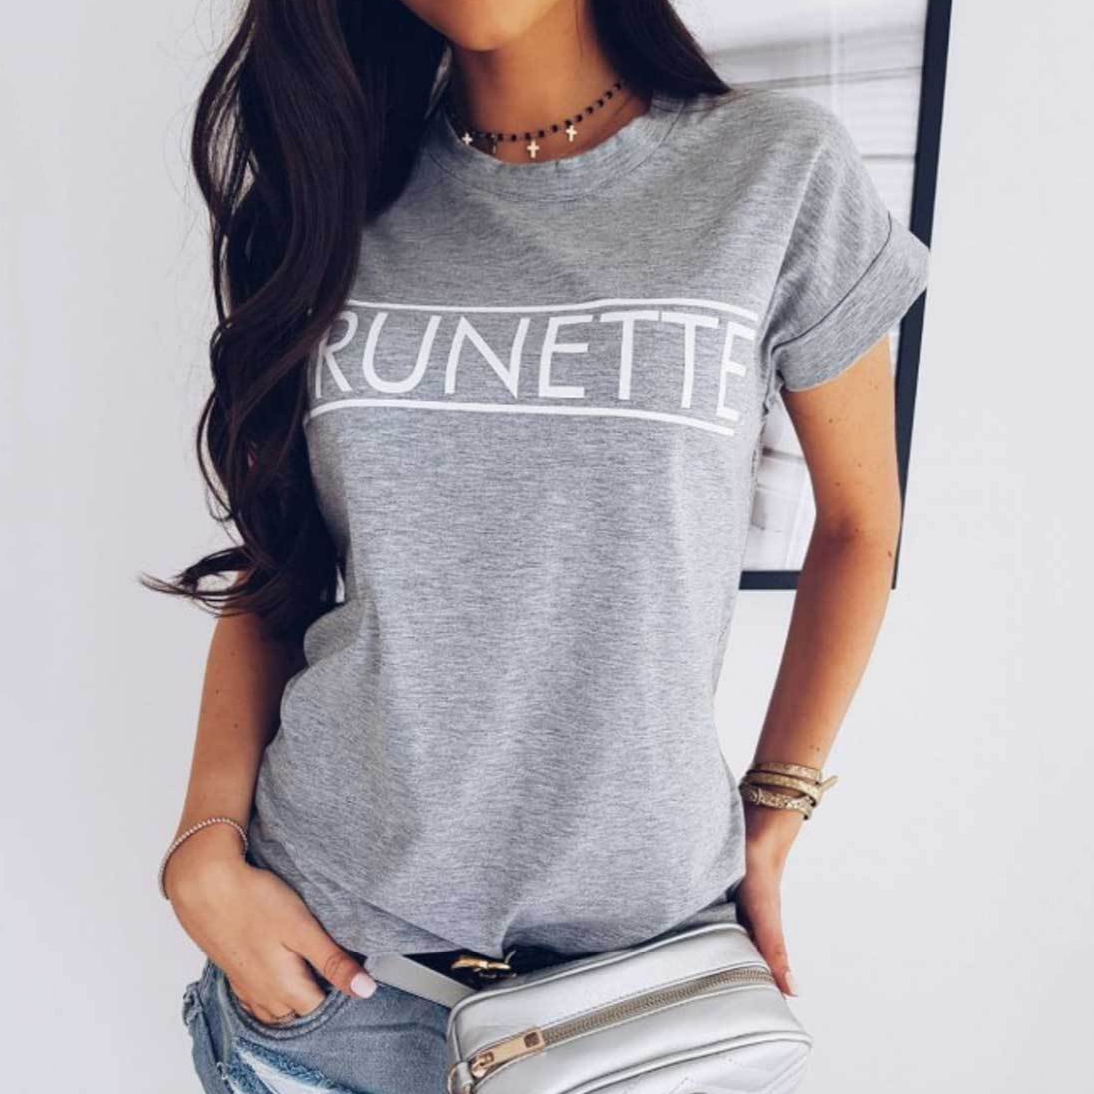 904c4643c82e9 Fashion Summer Women Short Sleeve Basic T shirt Elegant Ladies Tee Shirt  femme Casual Tops harajuku Hipster Cotton tshirt-in T-Shirts from Women's  Clothing ...